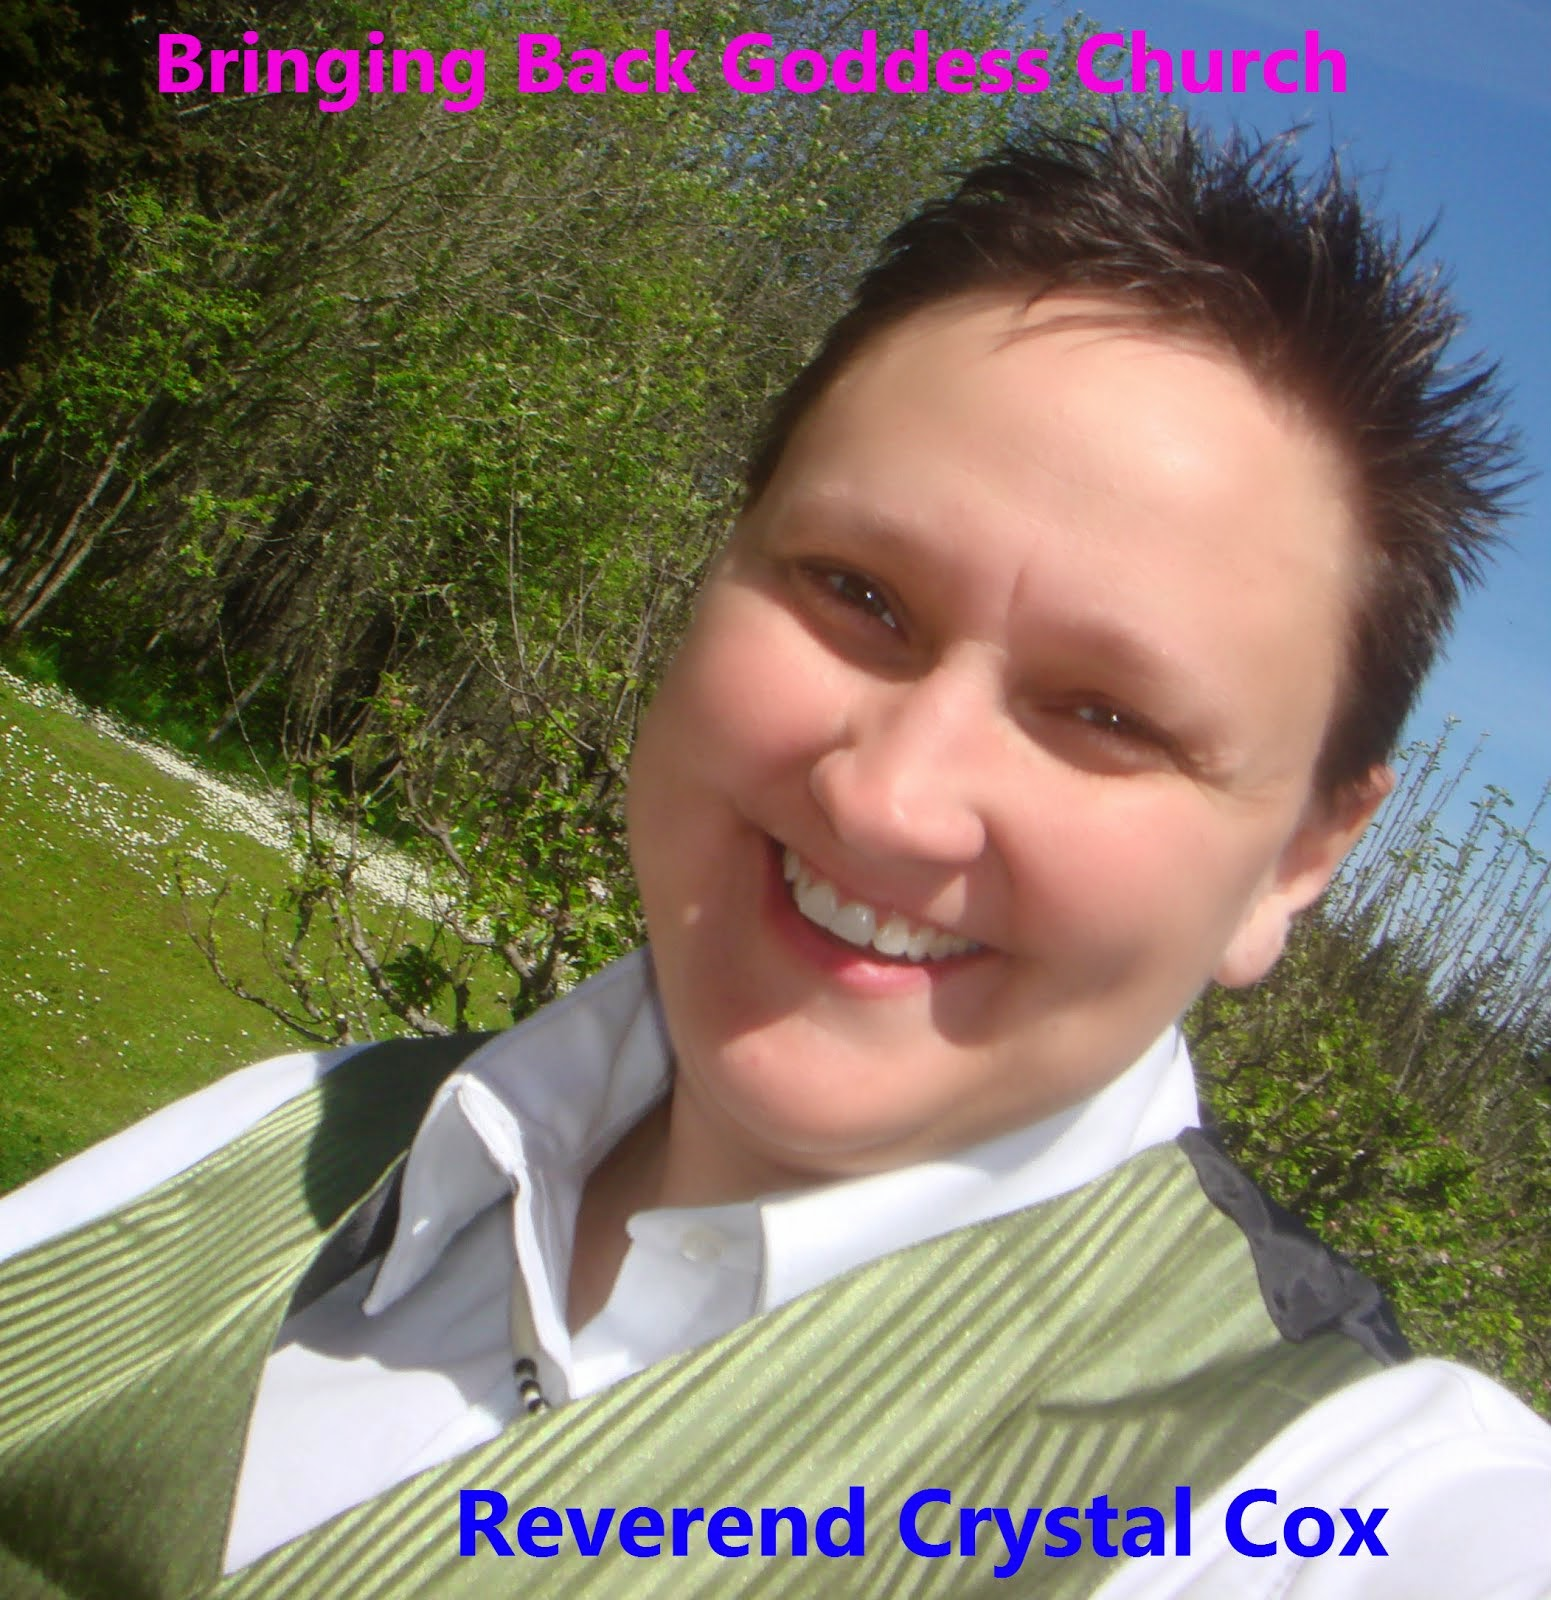 Reverend Crystal Cox